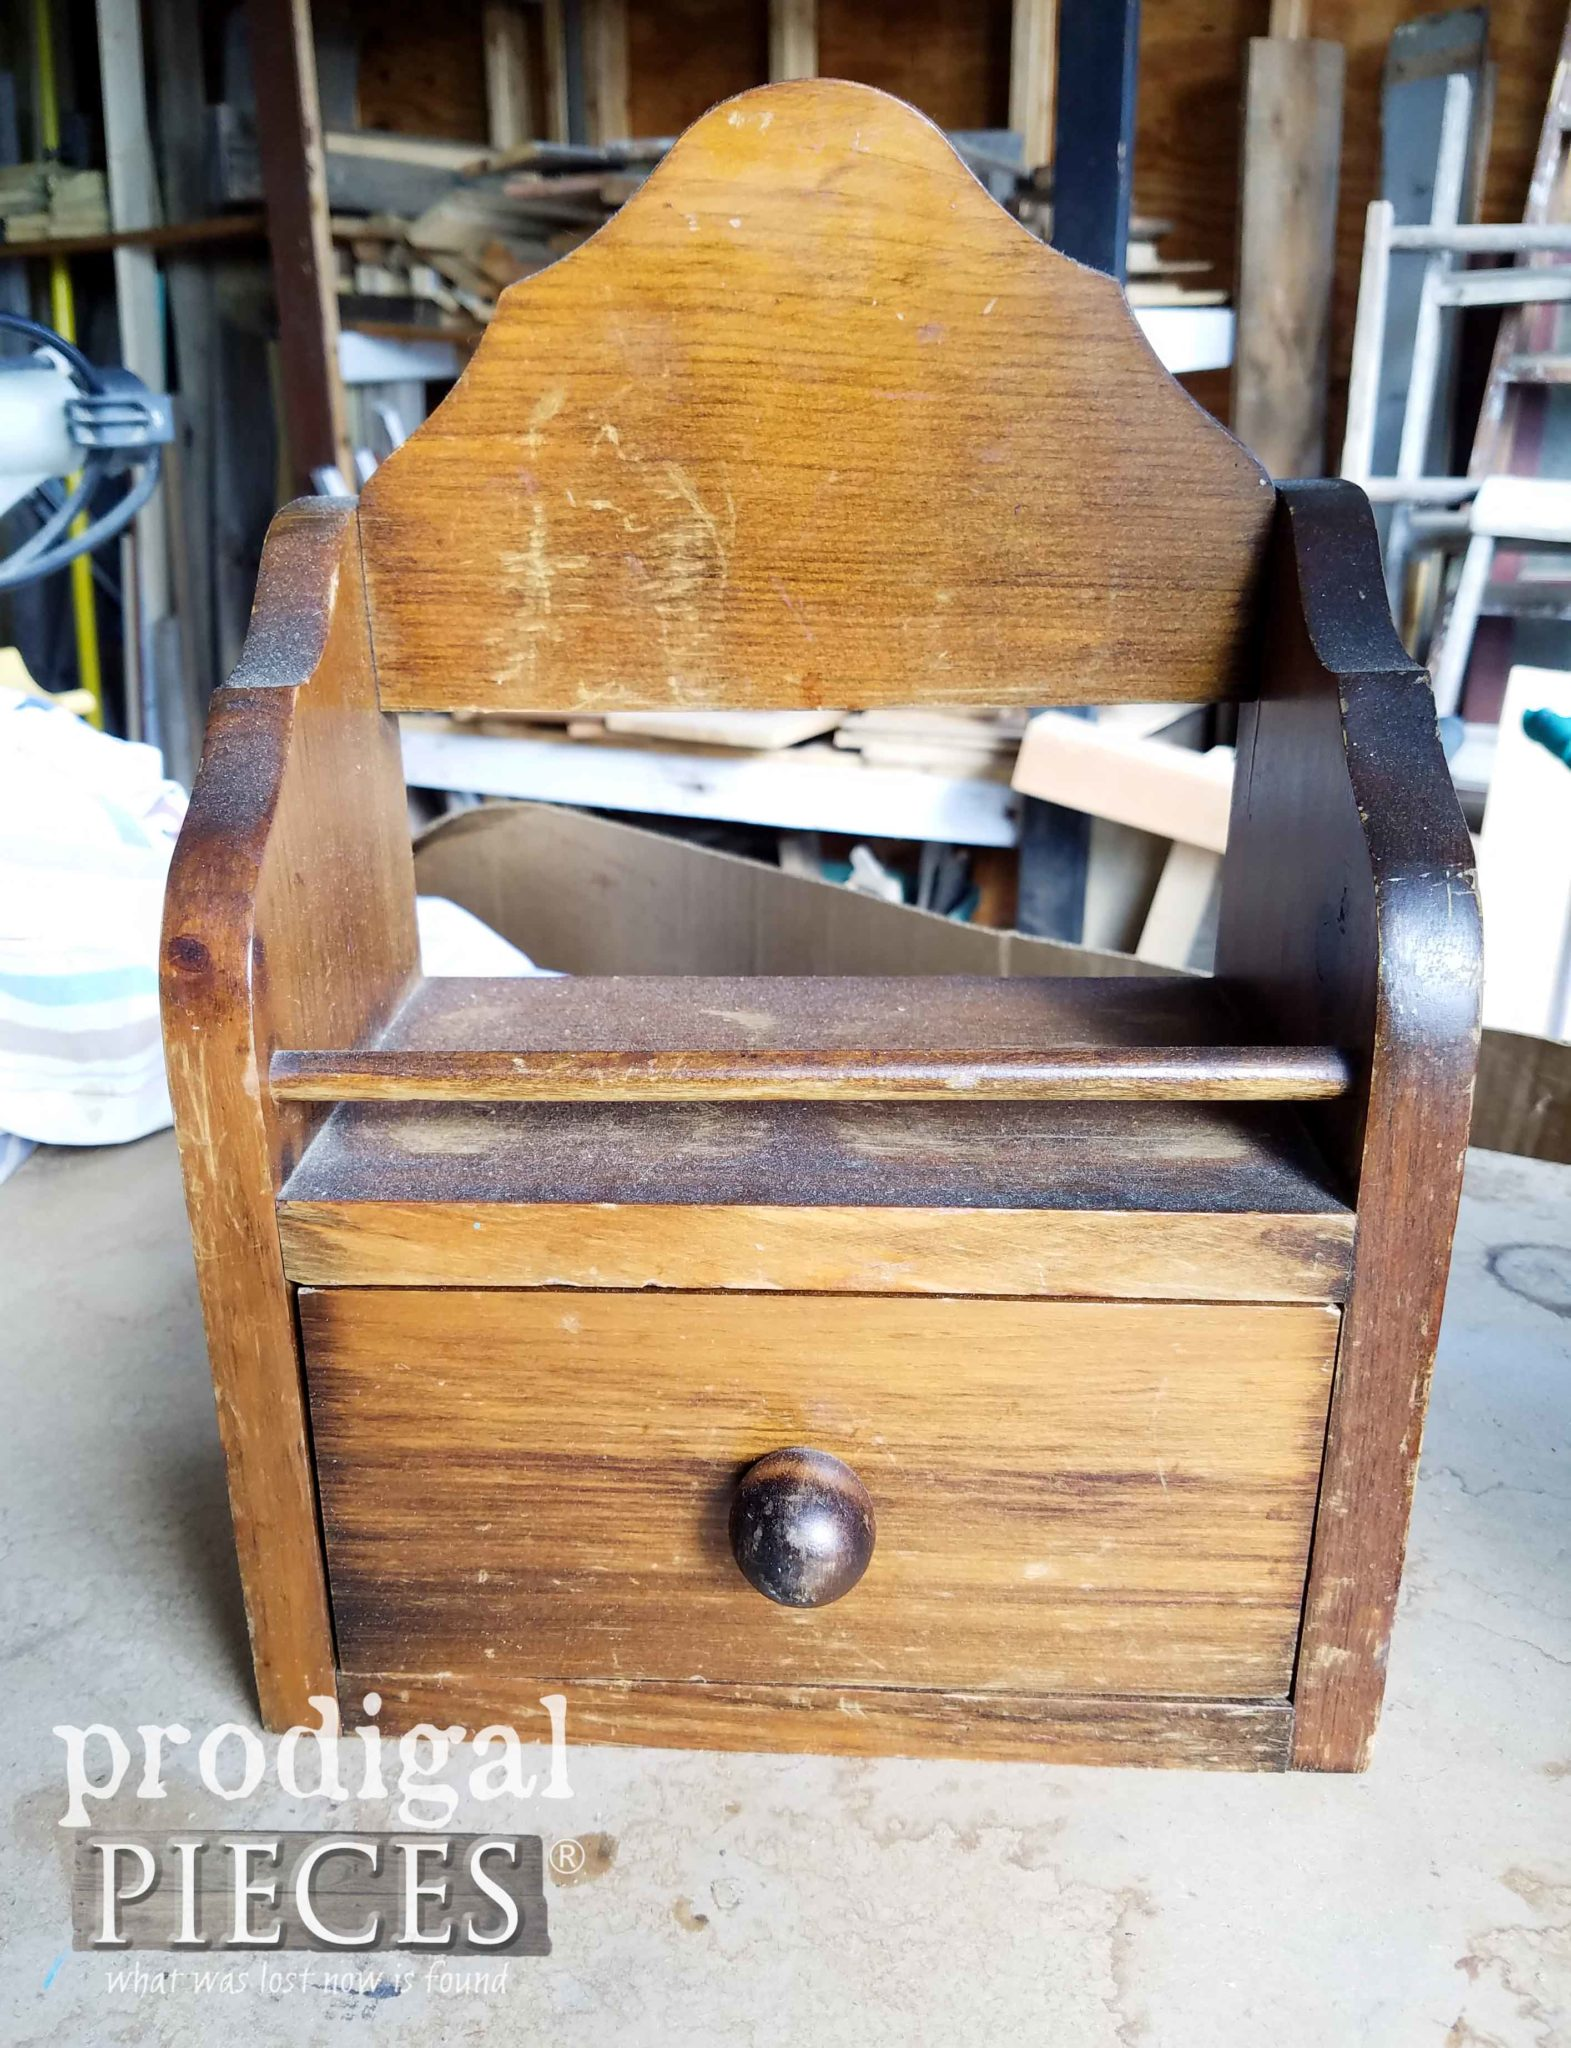 Thrifted Wood Box Before Makeover | prodigalpieces.com